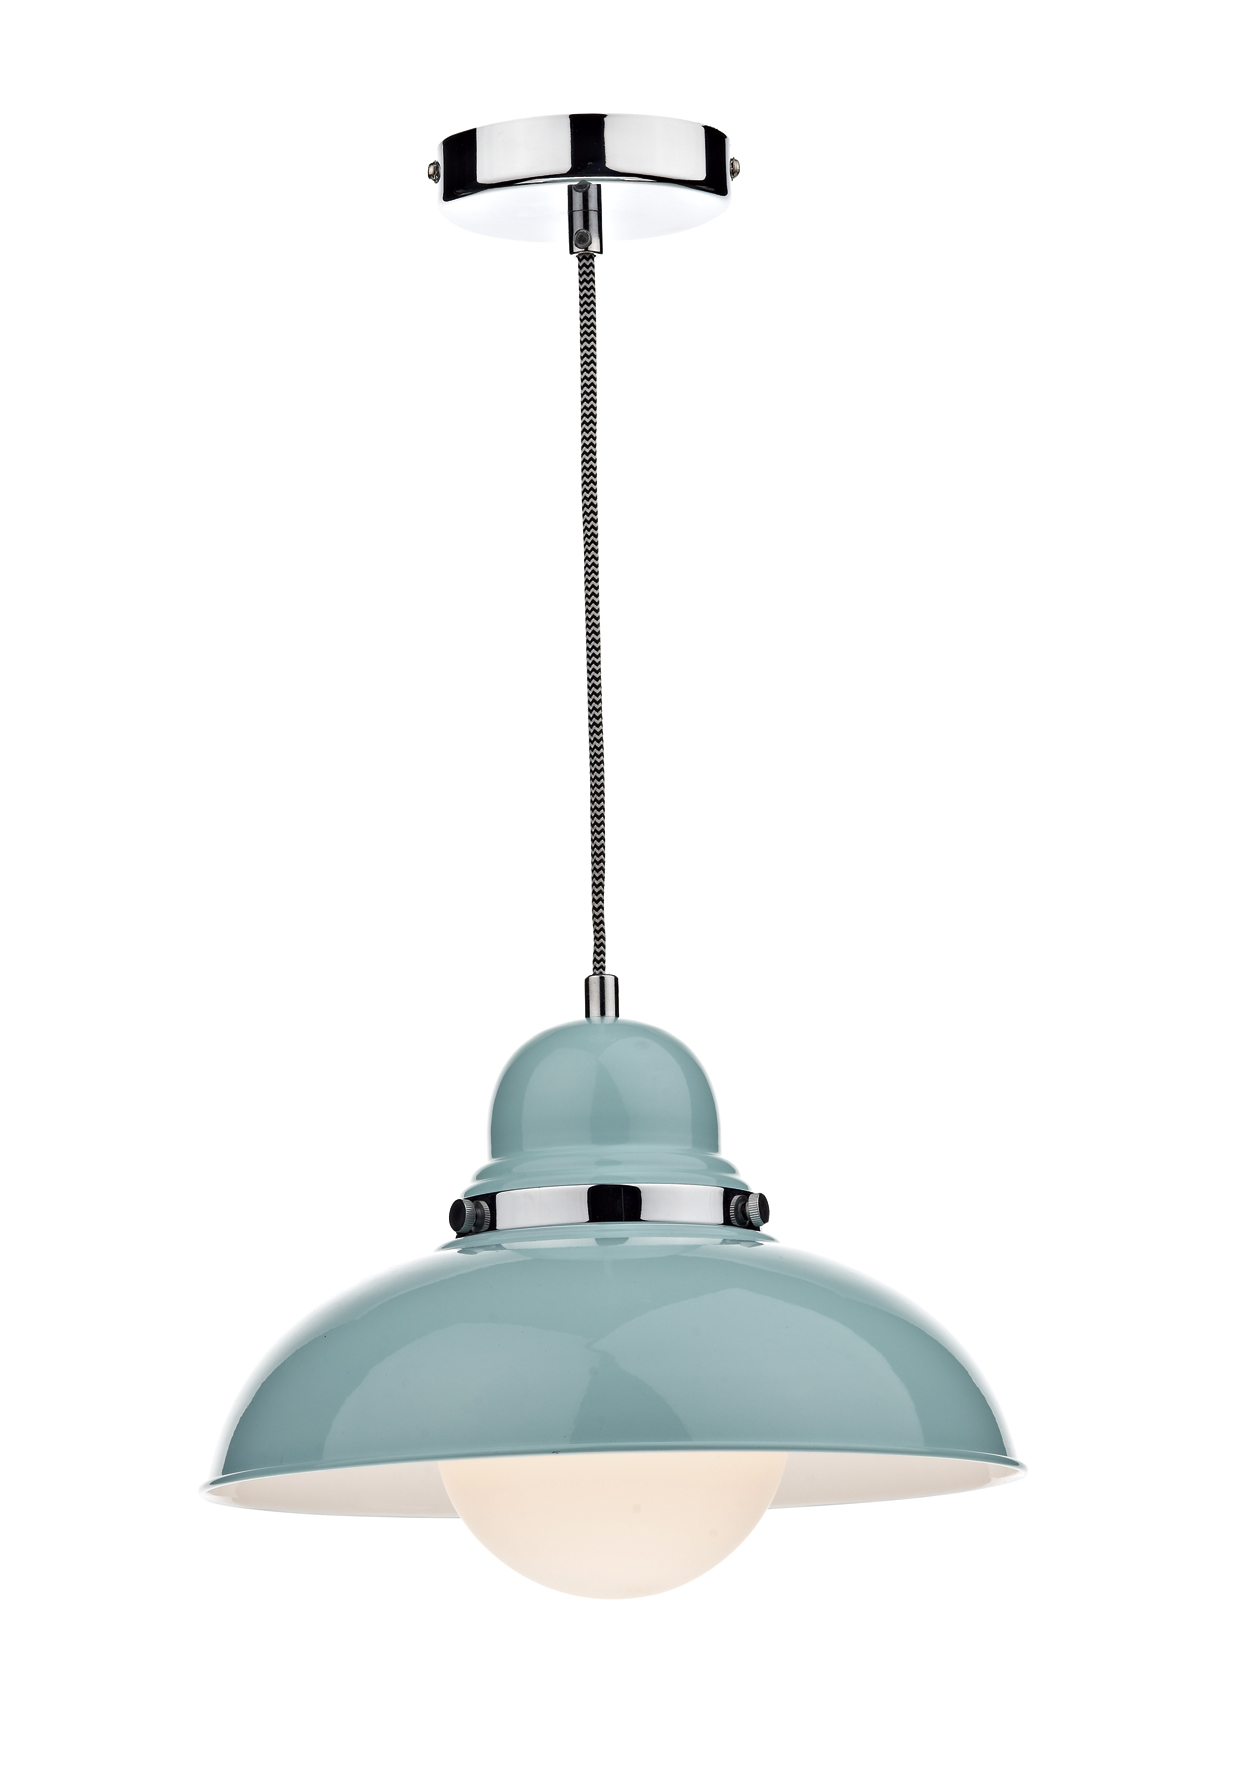 Dynamo 1 Light Pale Blue Pendant Ceiling Cl 2 Double Insulated Bxdyn0123 17